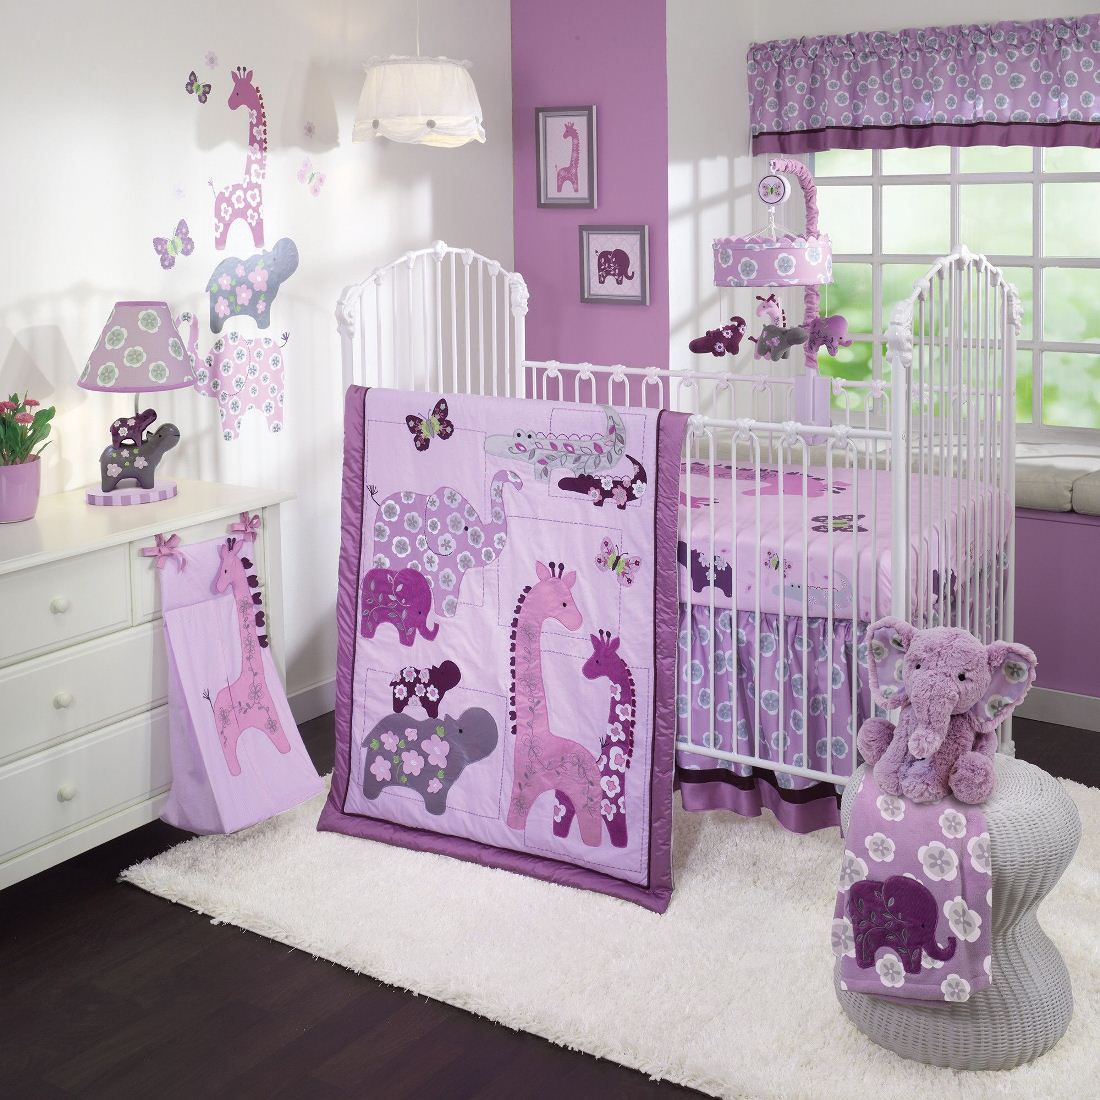 Angel Themed Design For A Baby Girl S Nursery: Purple Baby Girl Nursery Decorating Ideas With Jungle